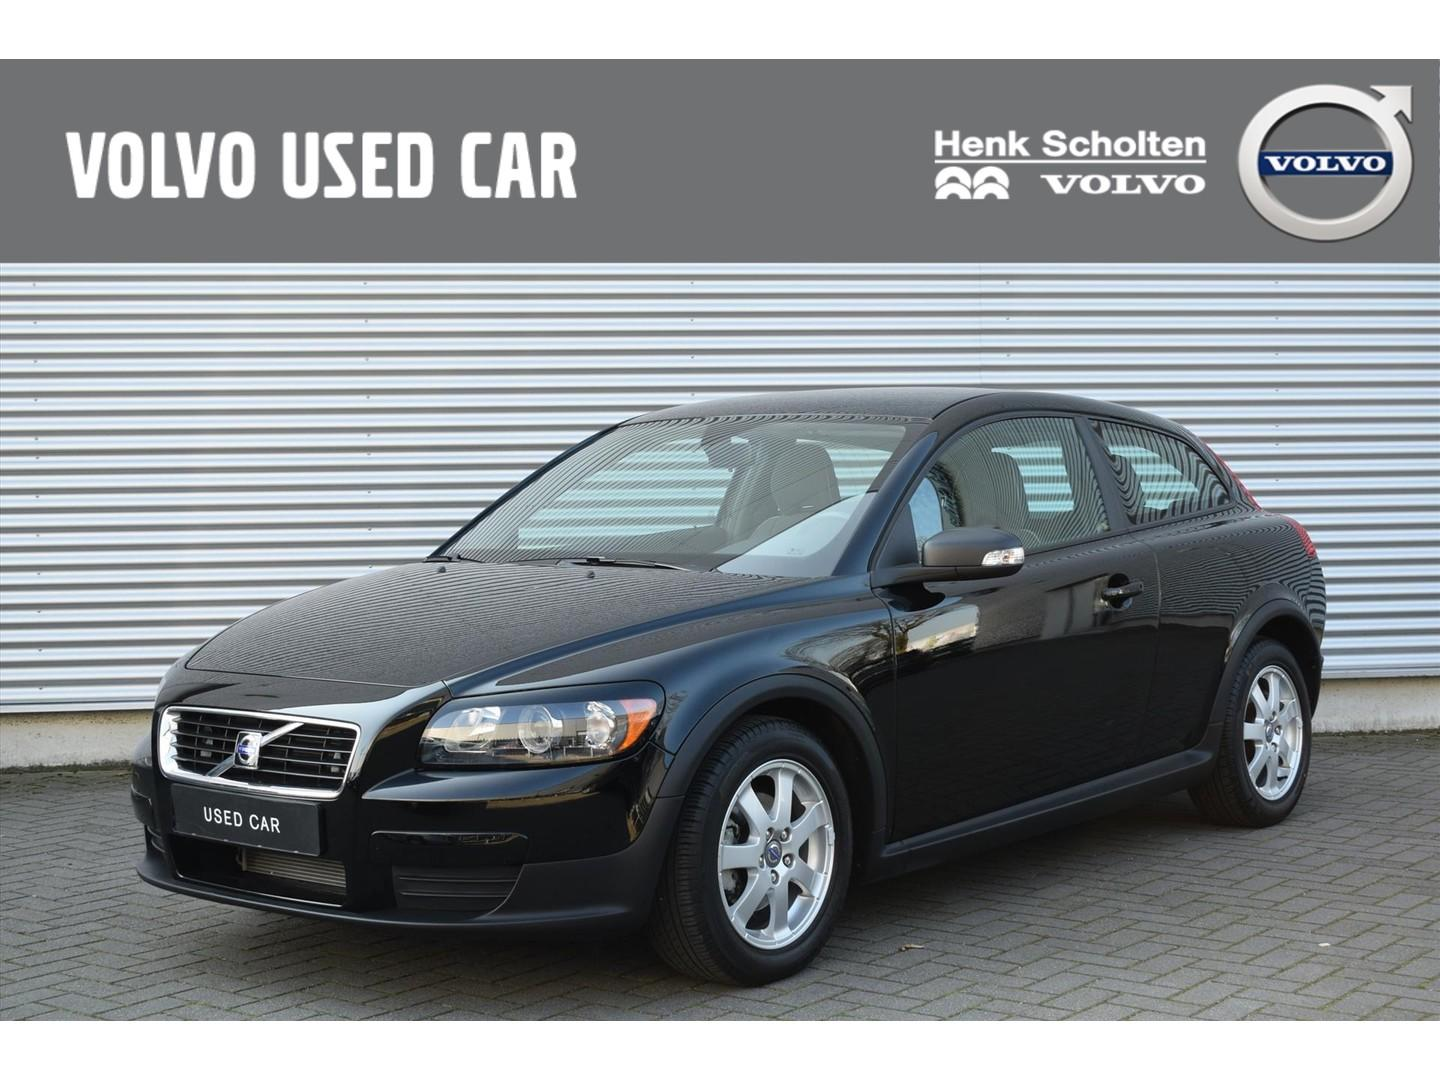 Volvo C30 1.6 125pk airco, cruise control, lage stand!